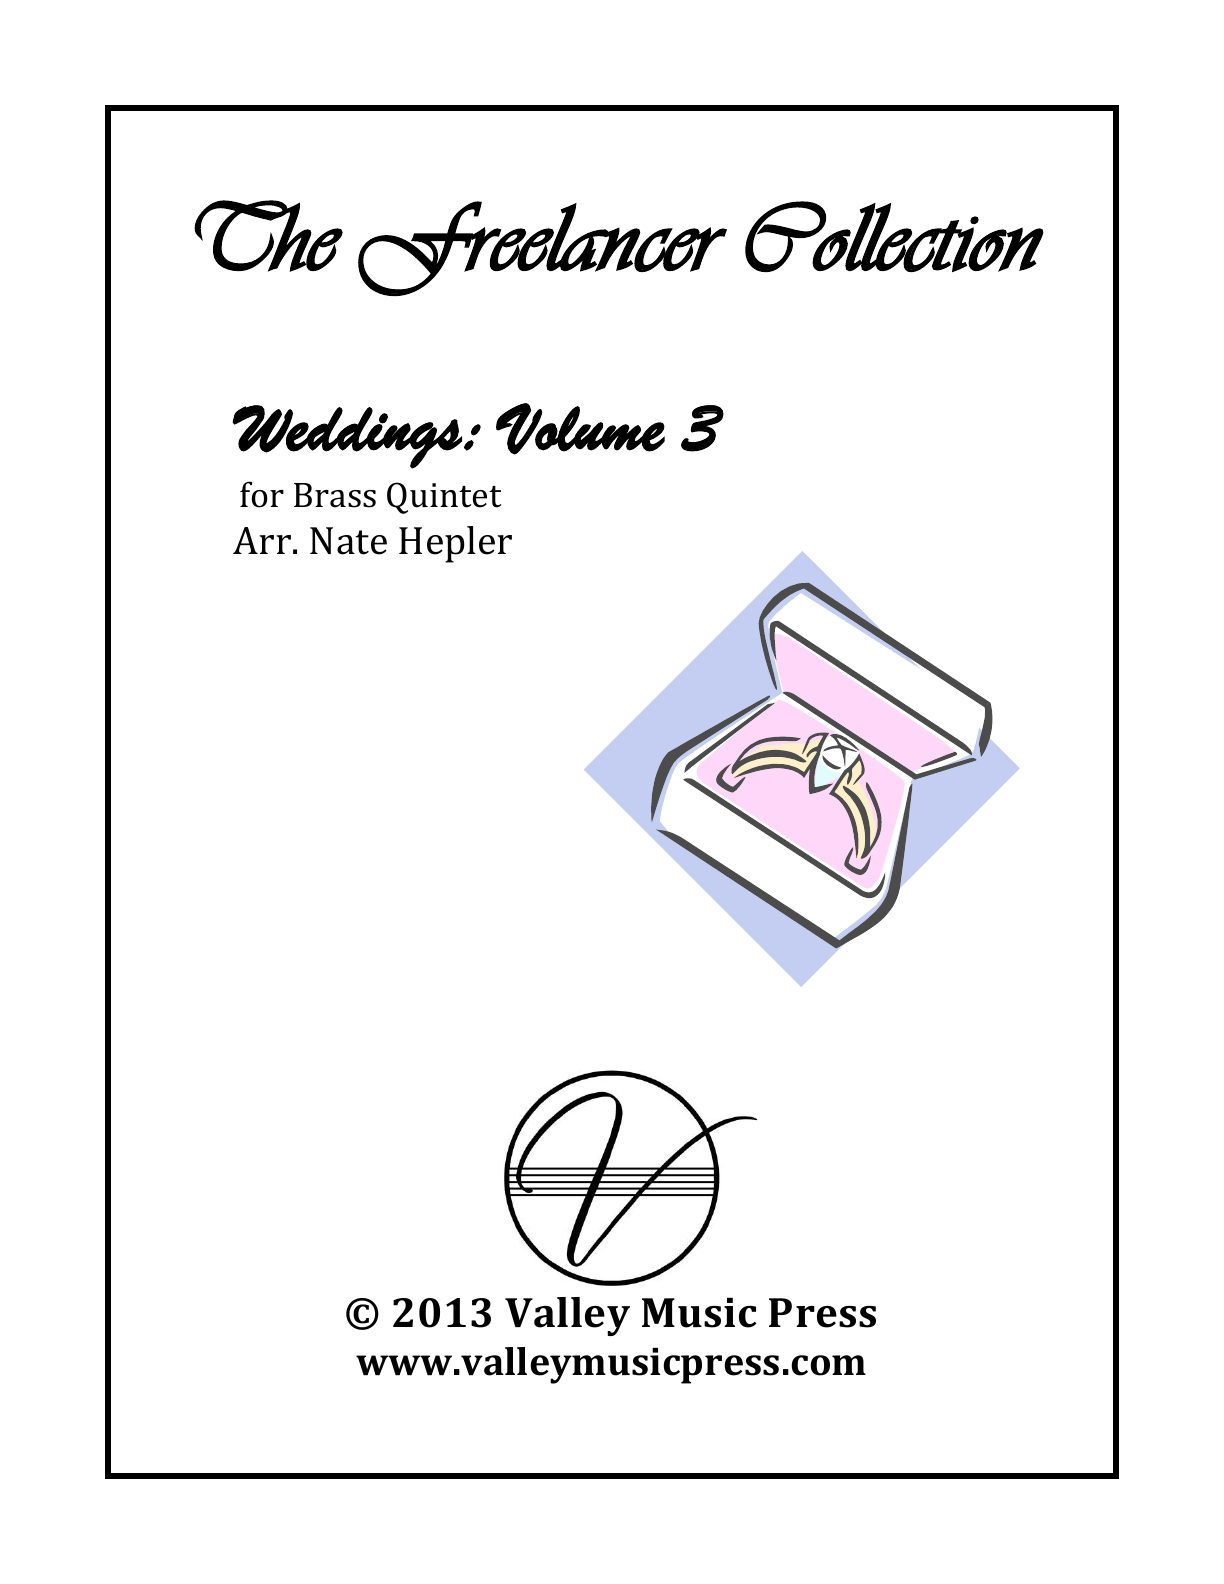 Hepler - The Freelancer Collection - Weddings: Vol. 3 (BQ)